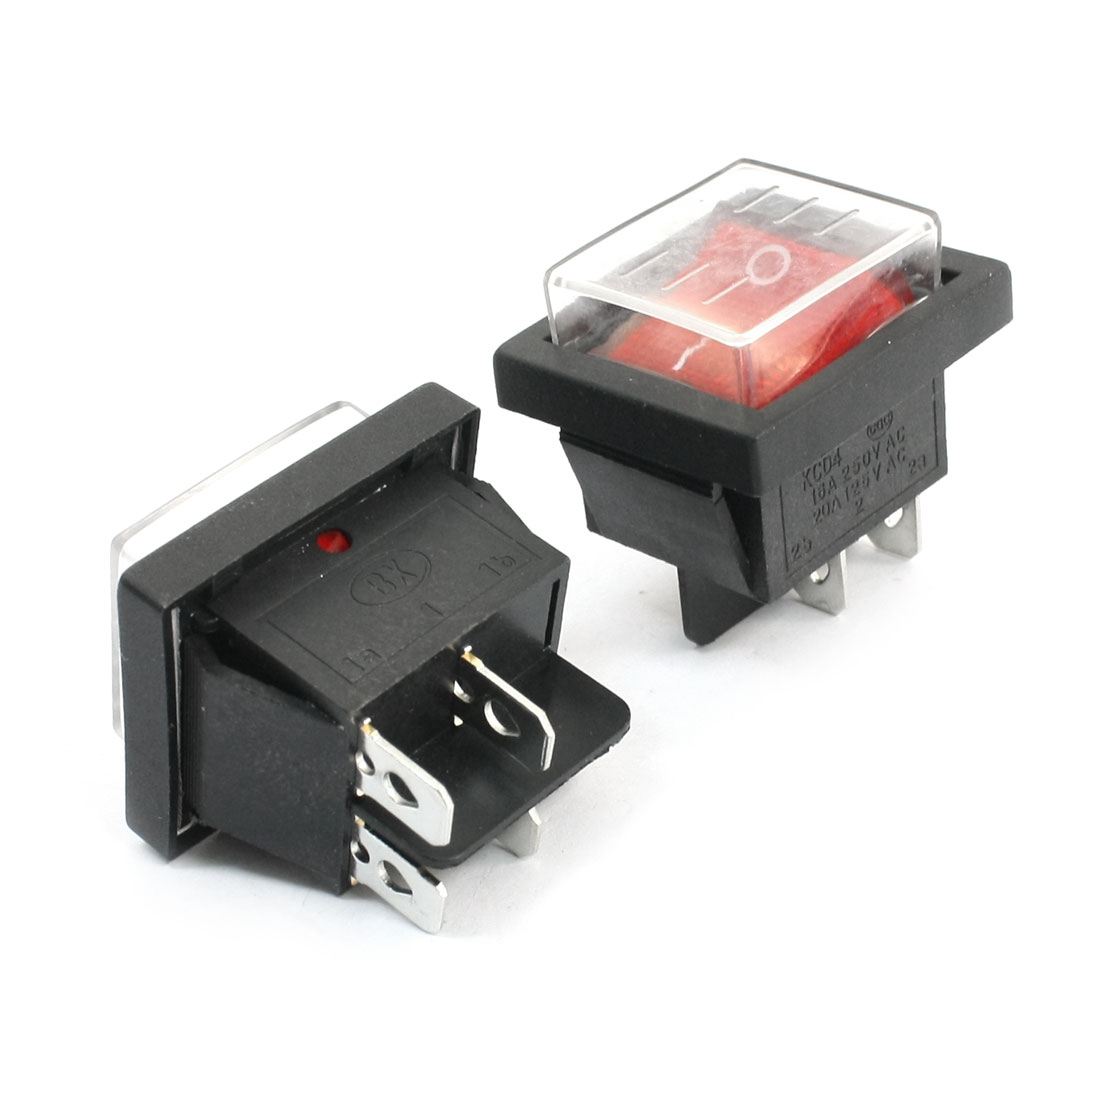 2pcs-DPST-I-O-Red-Button-Waterproof-Boat-Rocker-Switch-AC-125V-20A-250V-16A